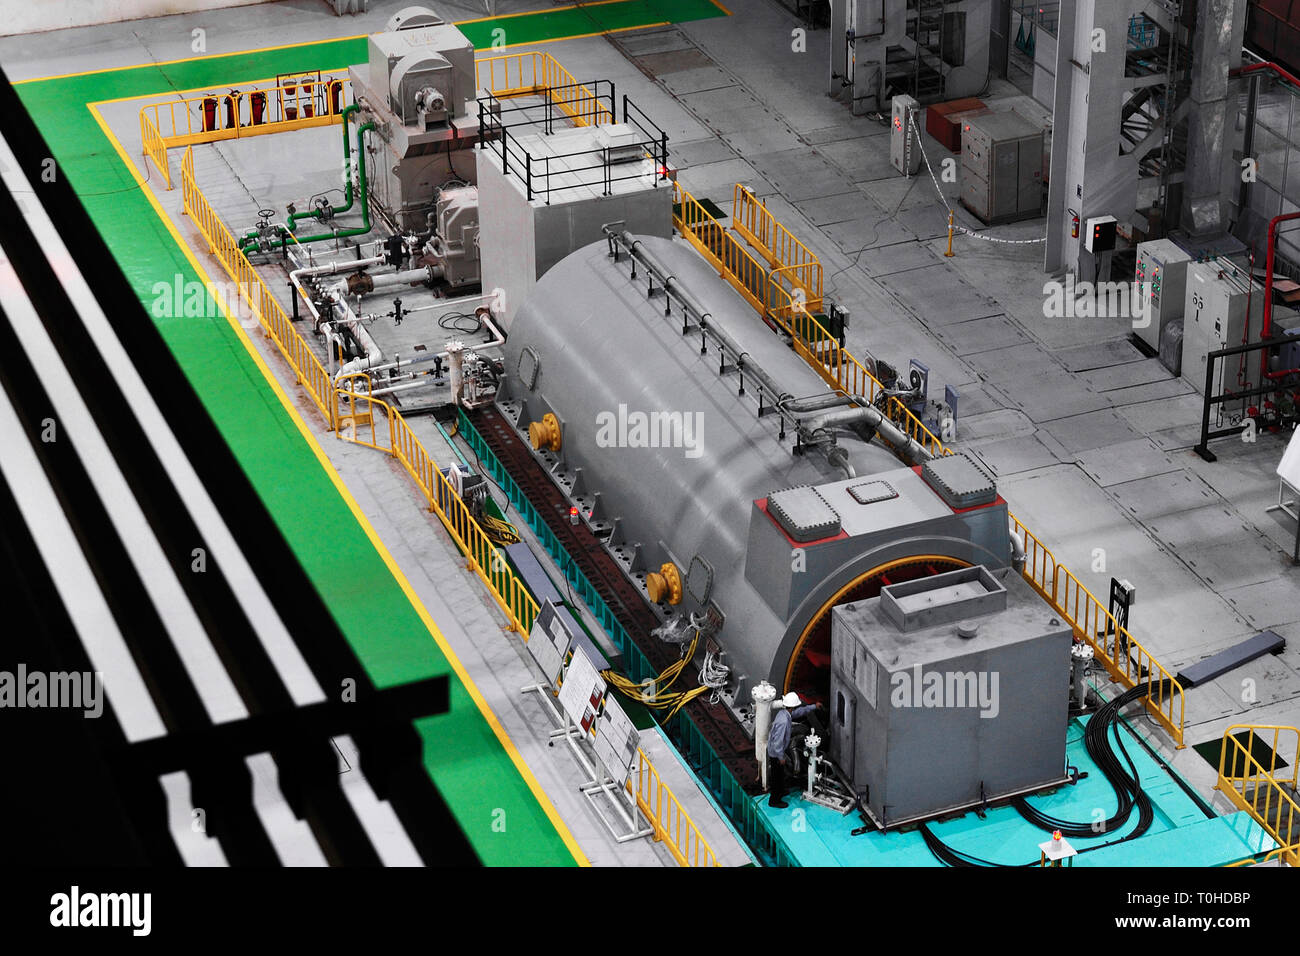 Power supply company generator, India, Asia - Stock Image